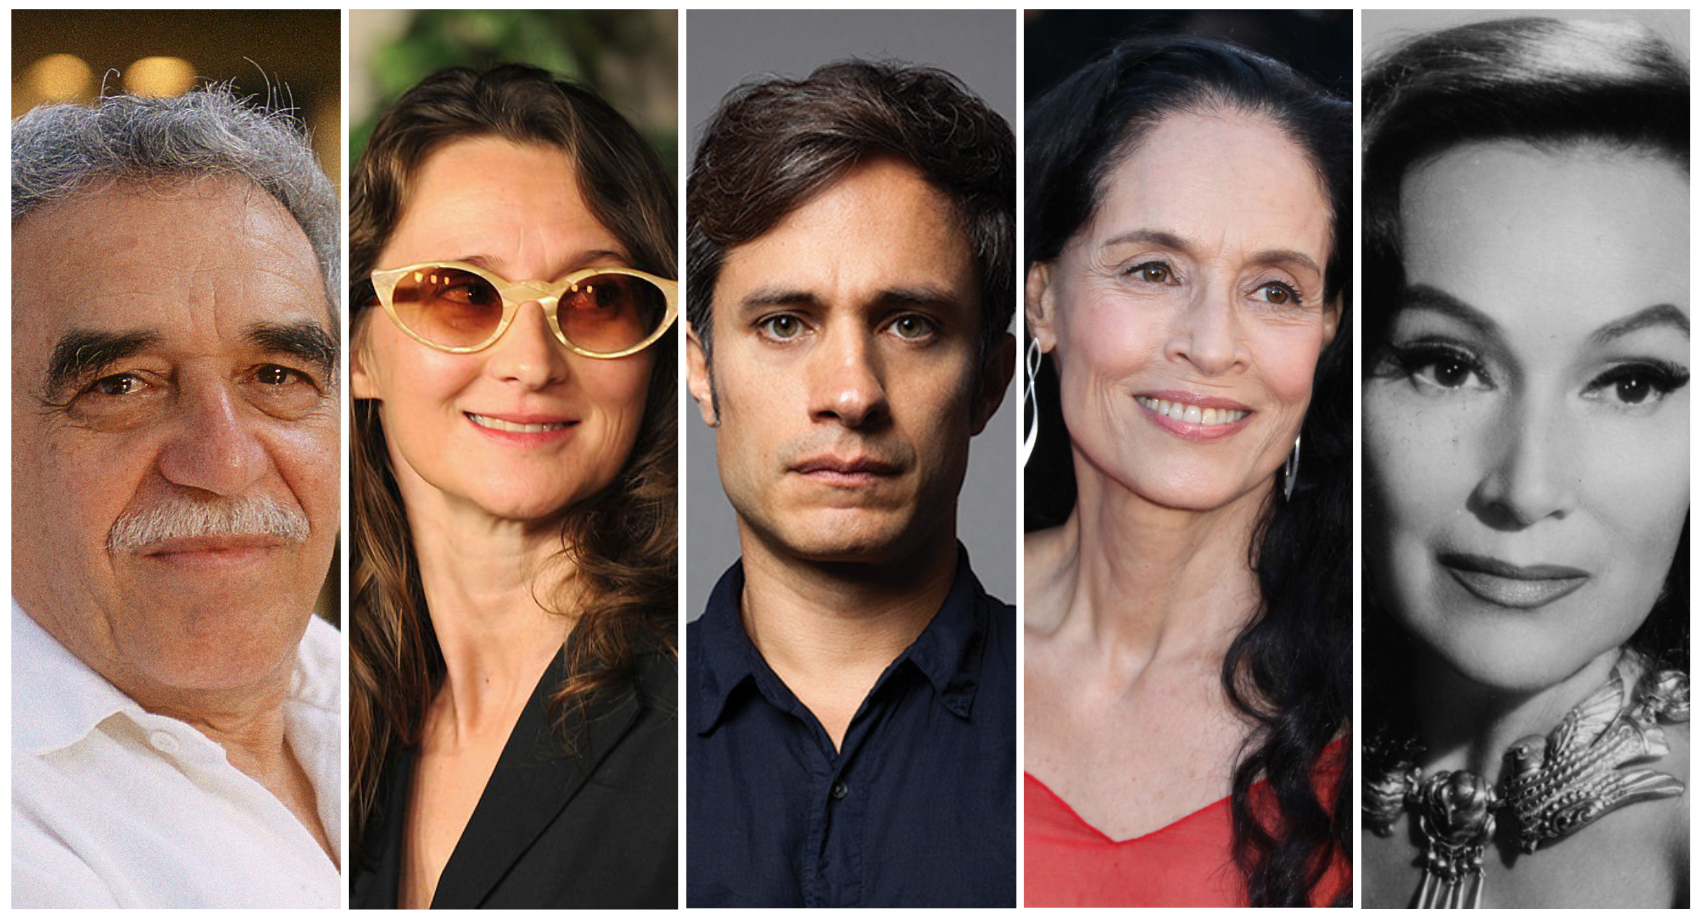 From Left to Right: Gabriel García Márquez, Lucrecia Martel, Gael García Bernal, Sonia Braga, and Dolores del Río.